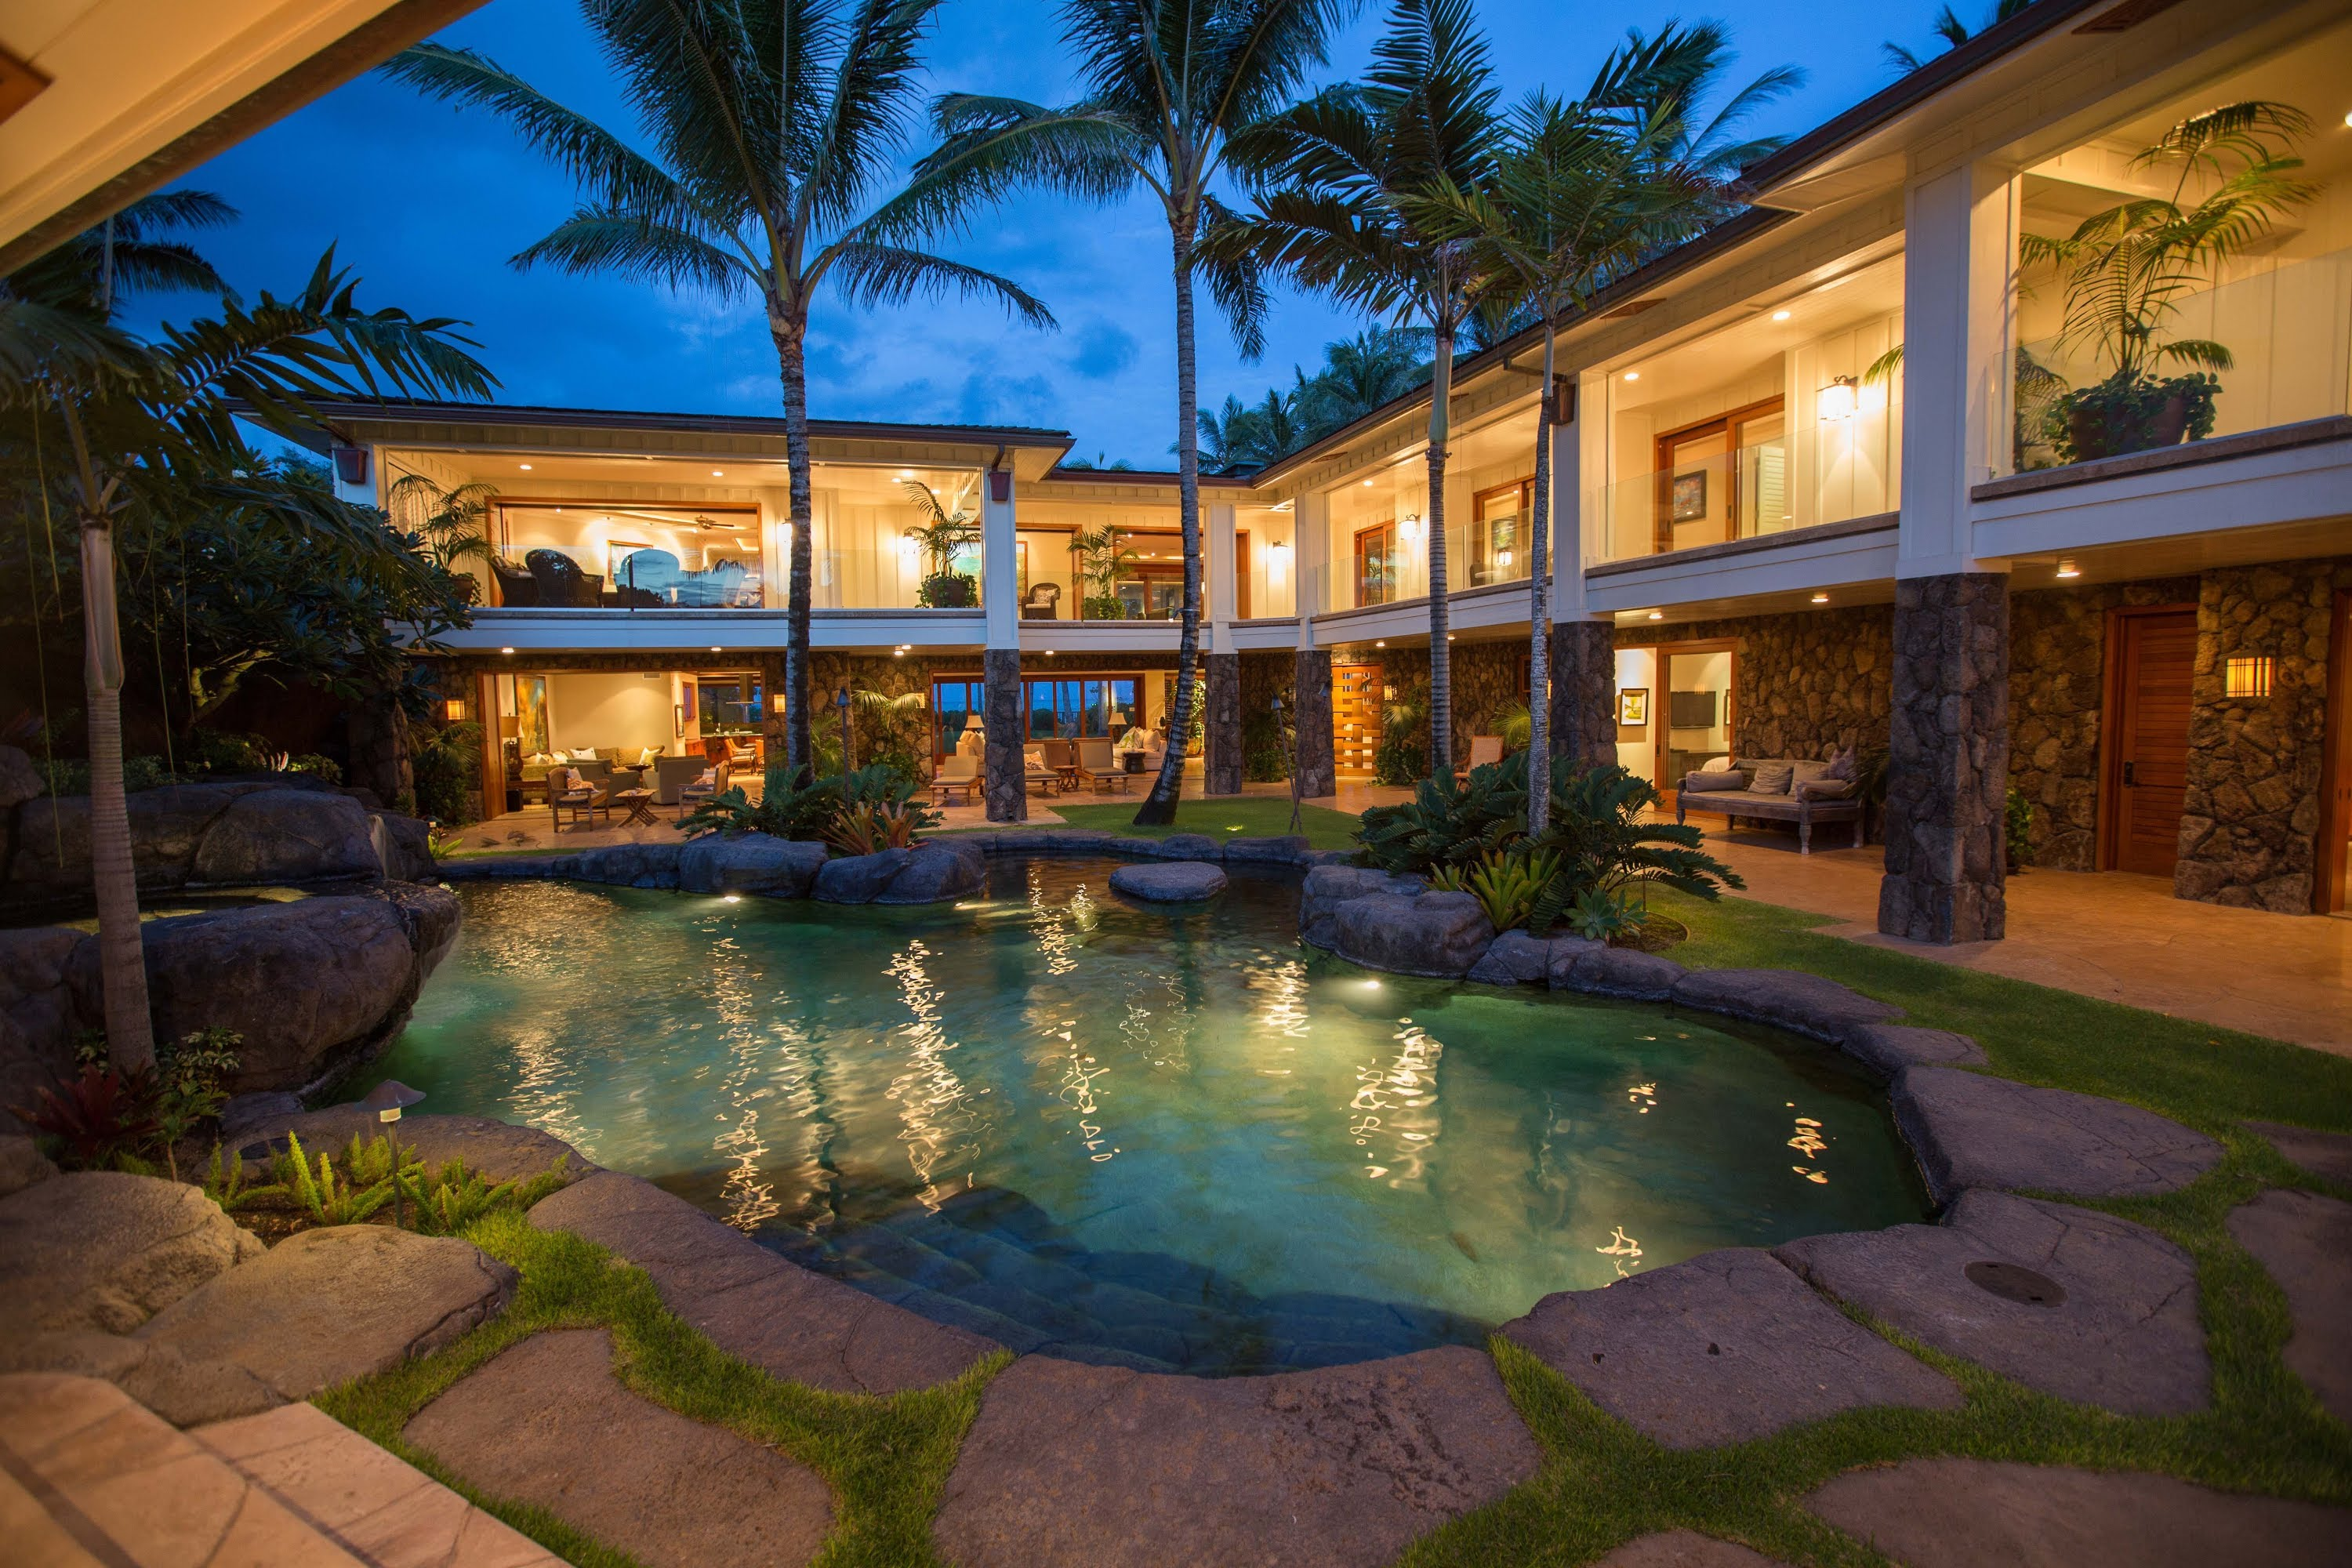 Home of the Week – Kailua-Kona